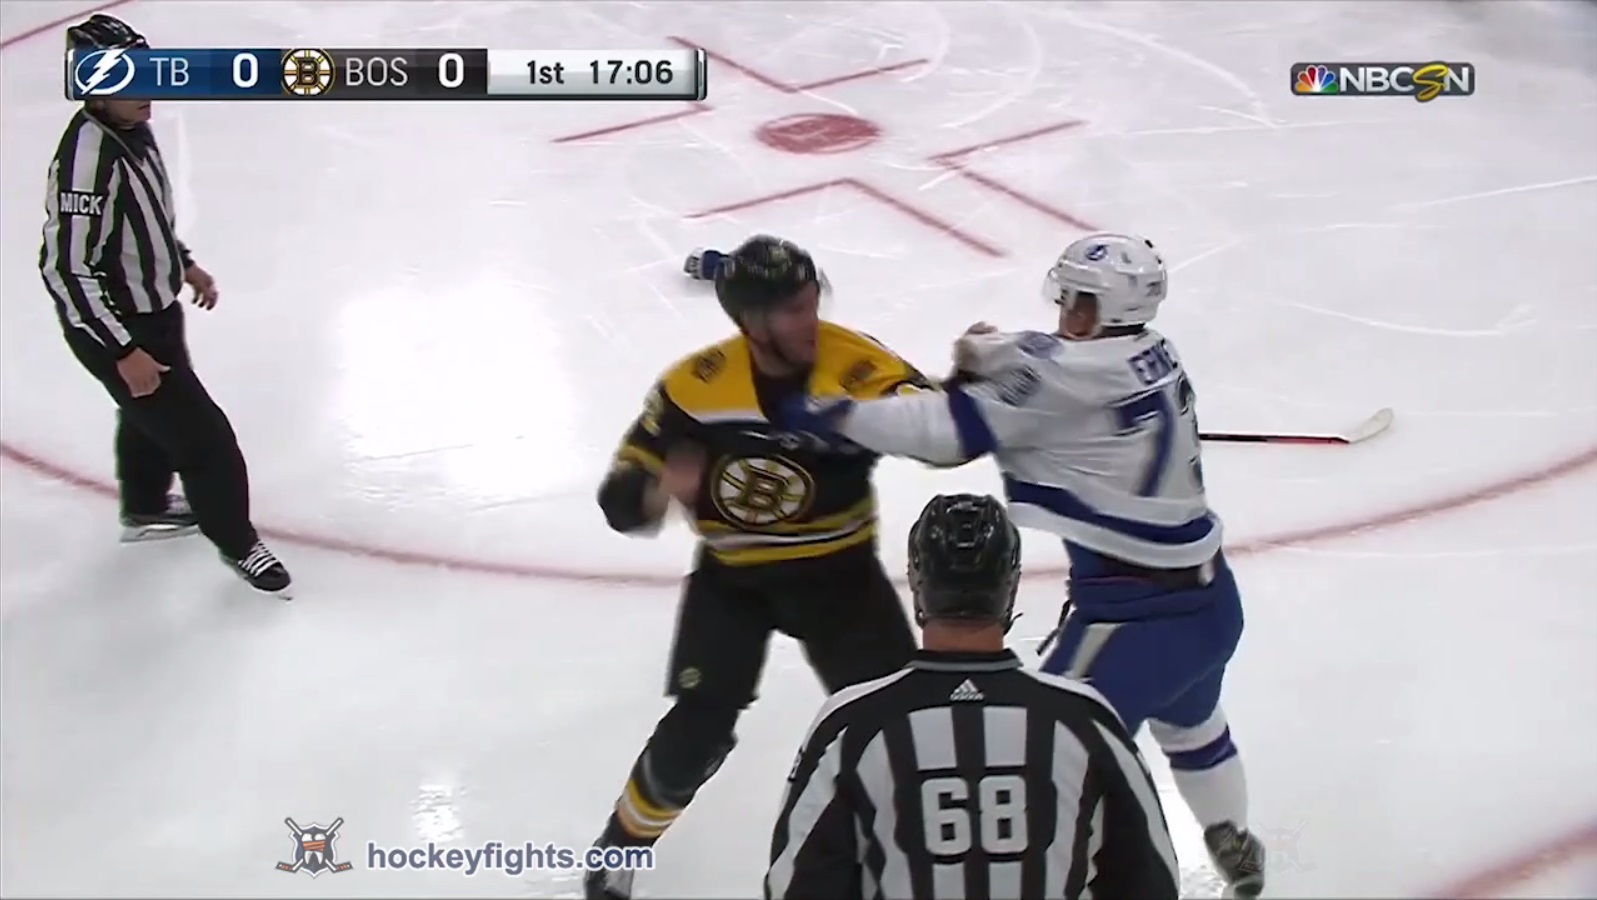 David Backes vs. Adam Erne